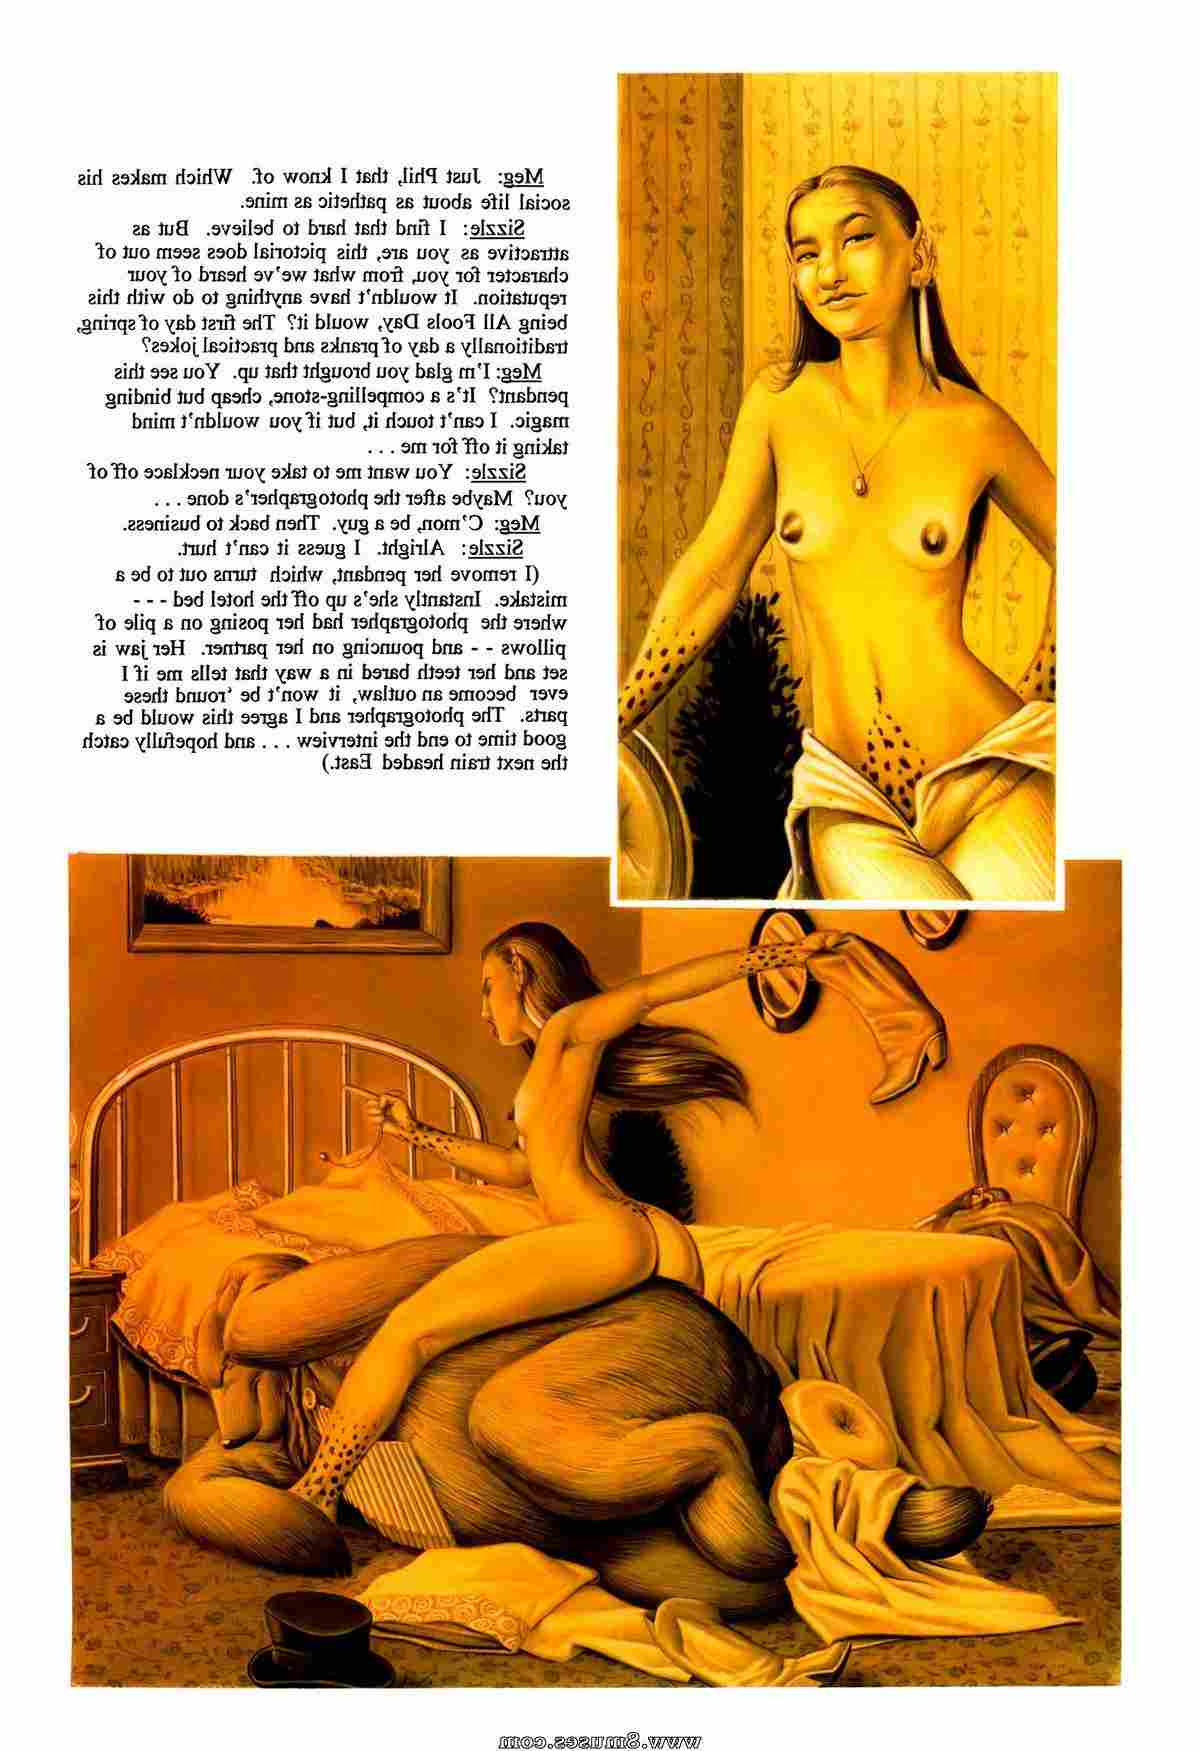 Amerotica-Comics/Short-Strokes Short_Strokes__8muses_-_Sex_and_Porn_Comics_9.jpg